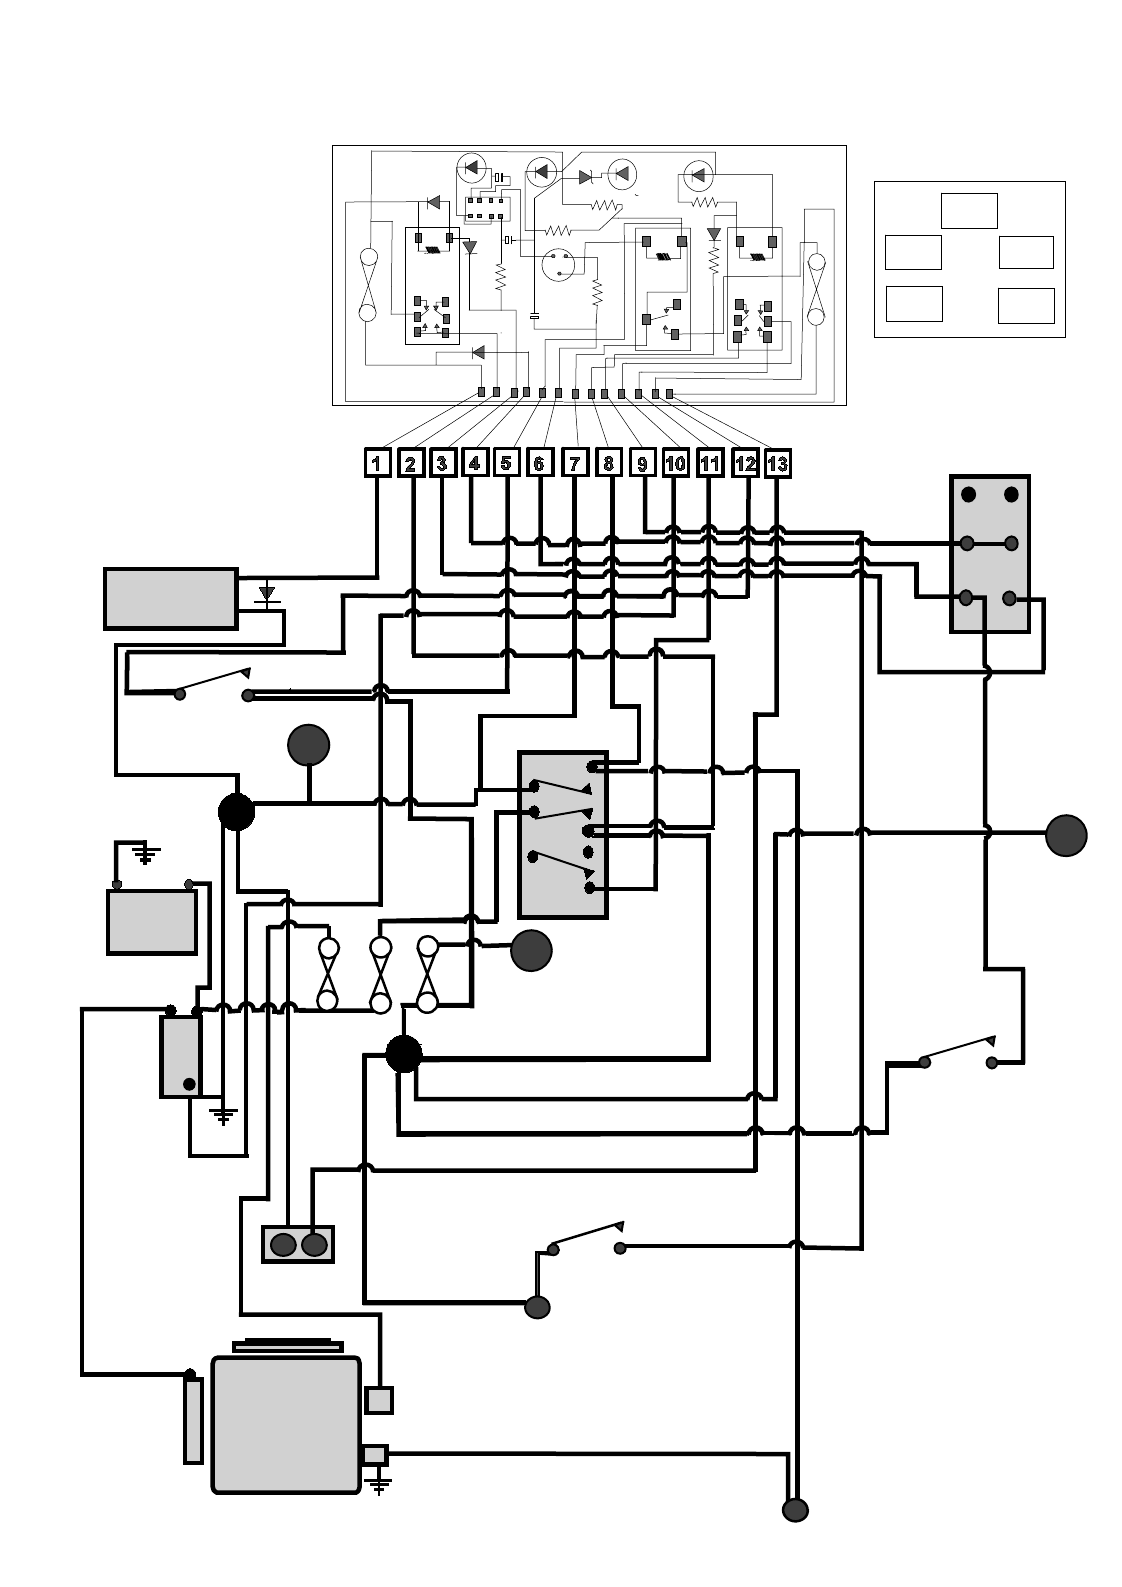 Forward Reverse 3 Phase Ac Motor furthermore Single Phase Air  pressor Schematic besides Watch further mon Electrical Motor Controlled Circuit 1 also Matsch caps mag ics chap6 12 02. on wiring diagram of star delta starter